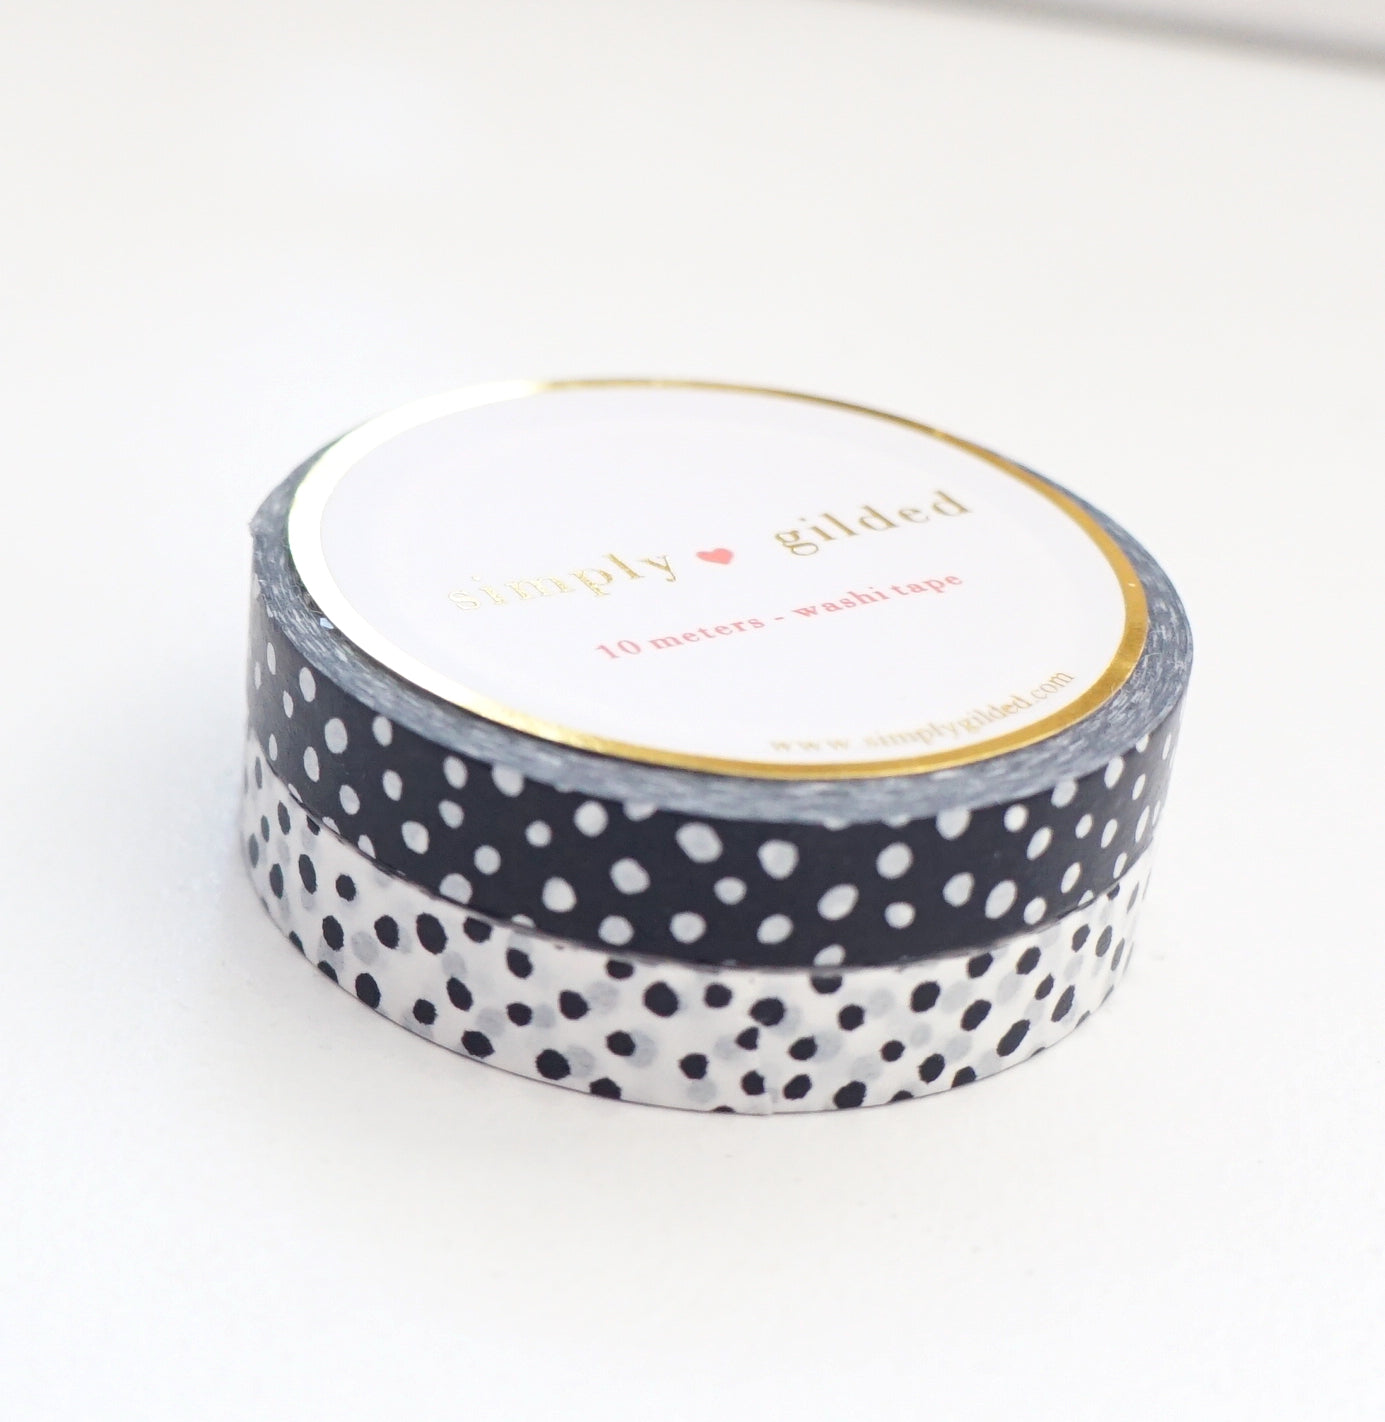 7.5mm WASHI TAPE set of 2 - BLACK & WHITE Confetti  (Black Friday 19 Release)